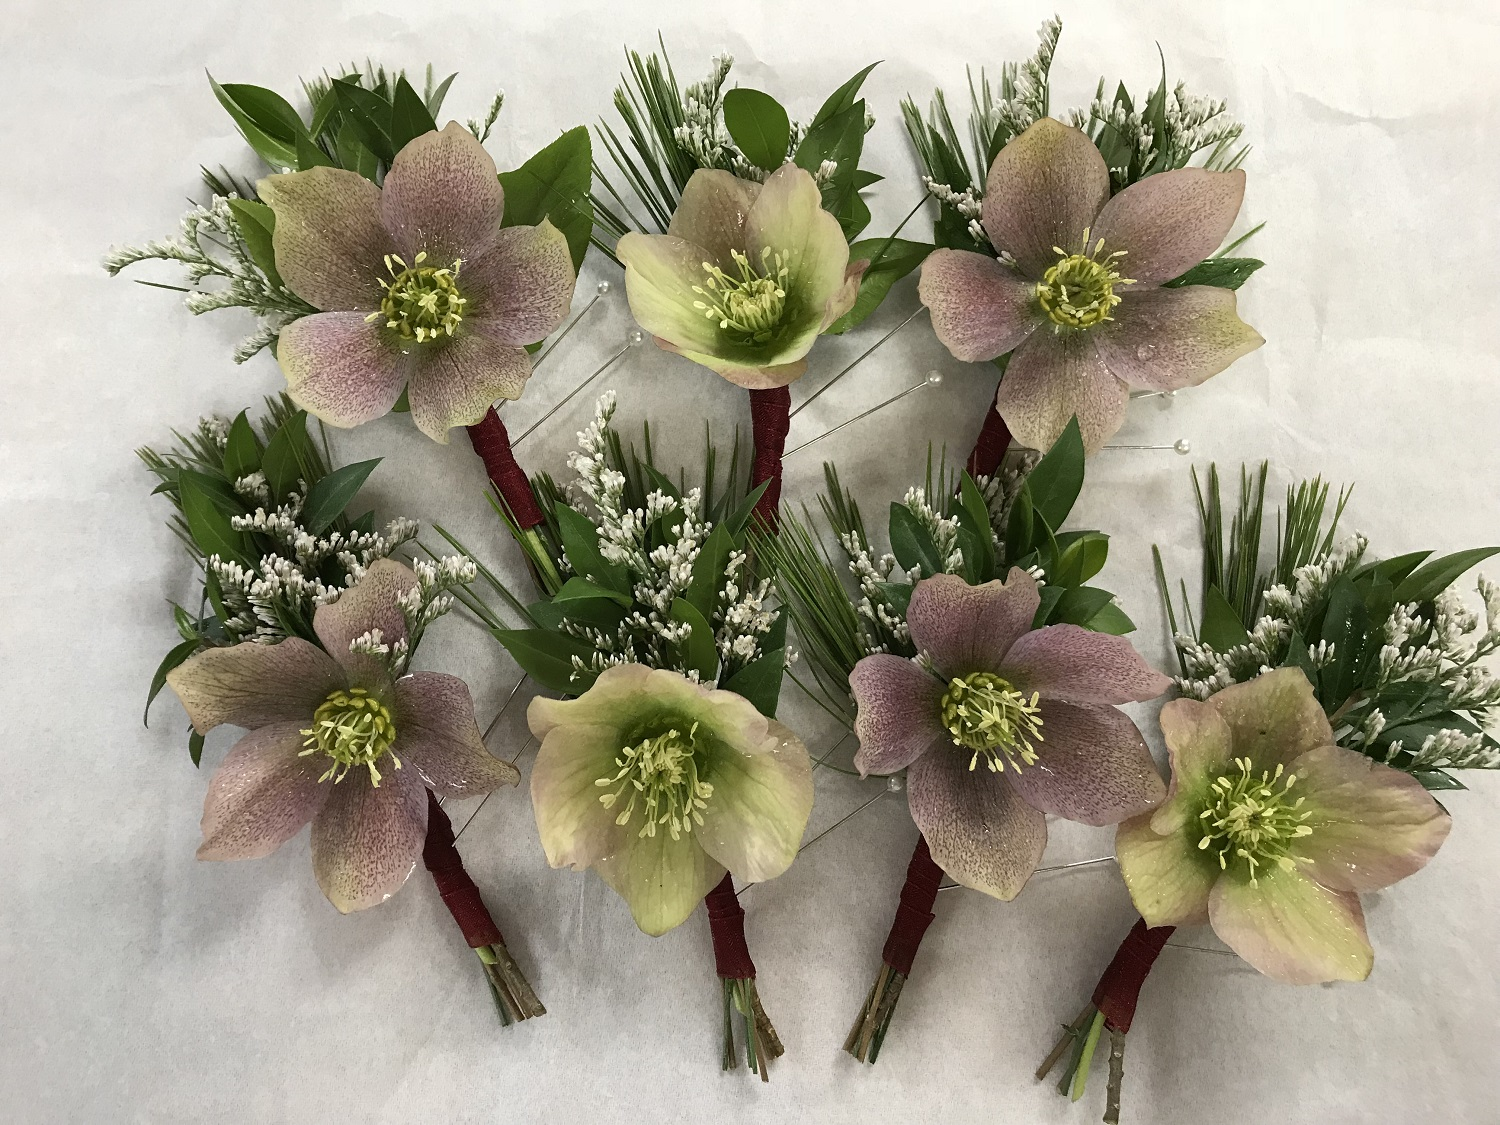 Hellebore bouts